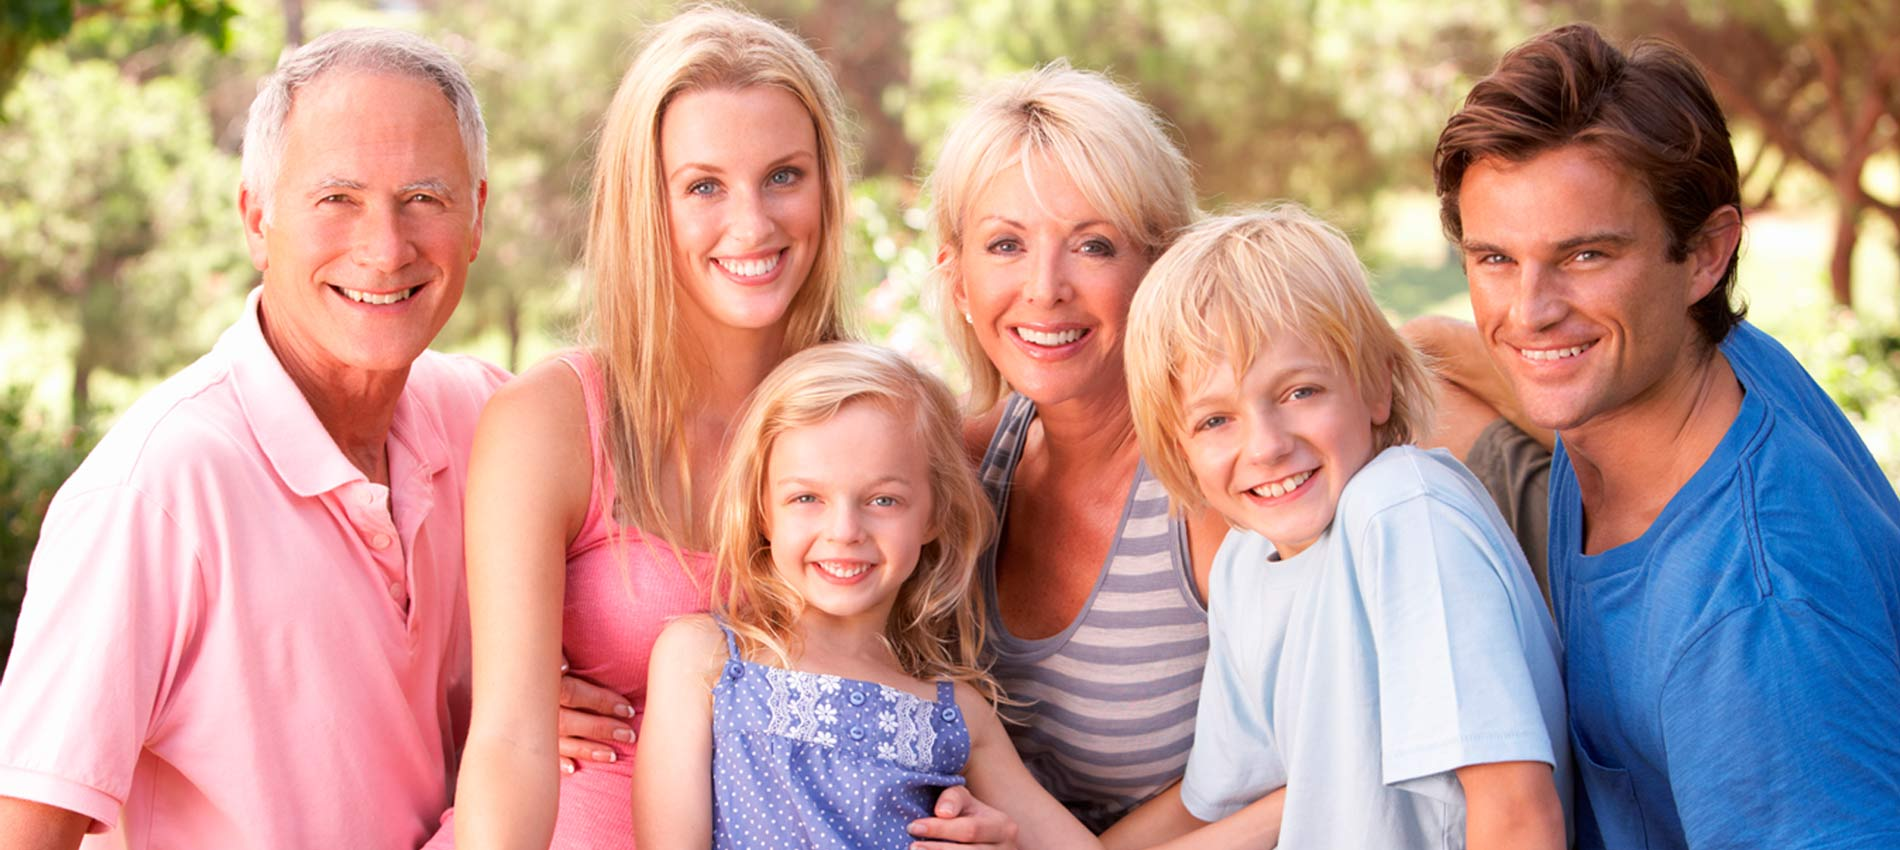 We love seeing patients of all ages! We offer treatments ranging from pediatric dentistry to replacing missing teeth, from sports guards to regular maintenance for the whole family